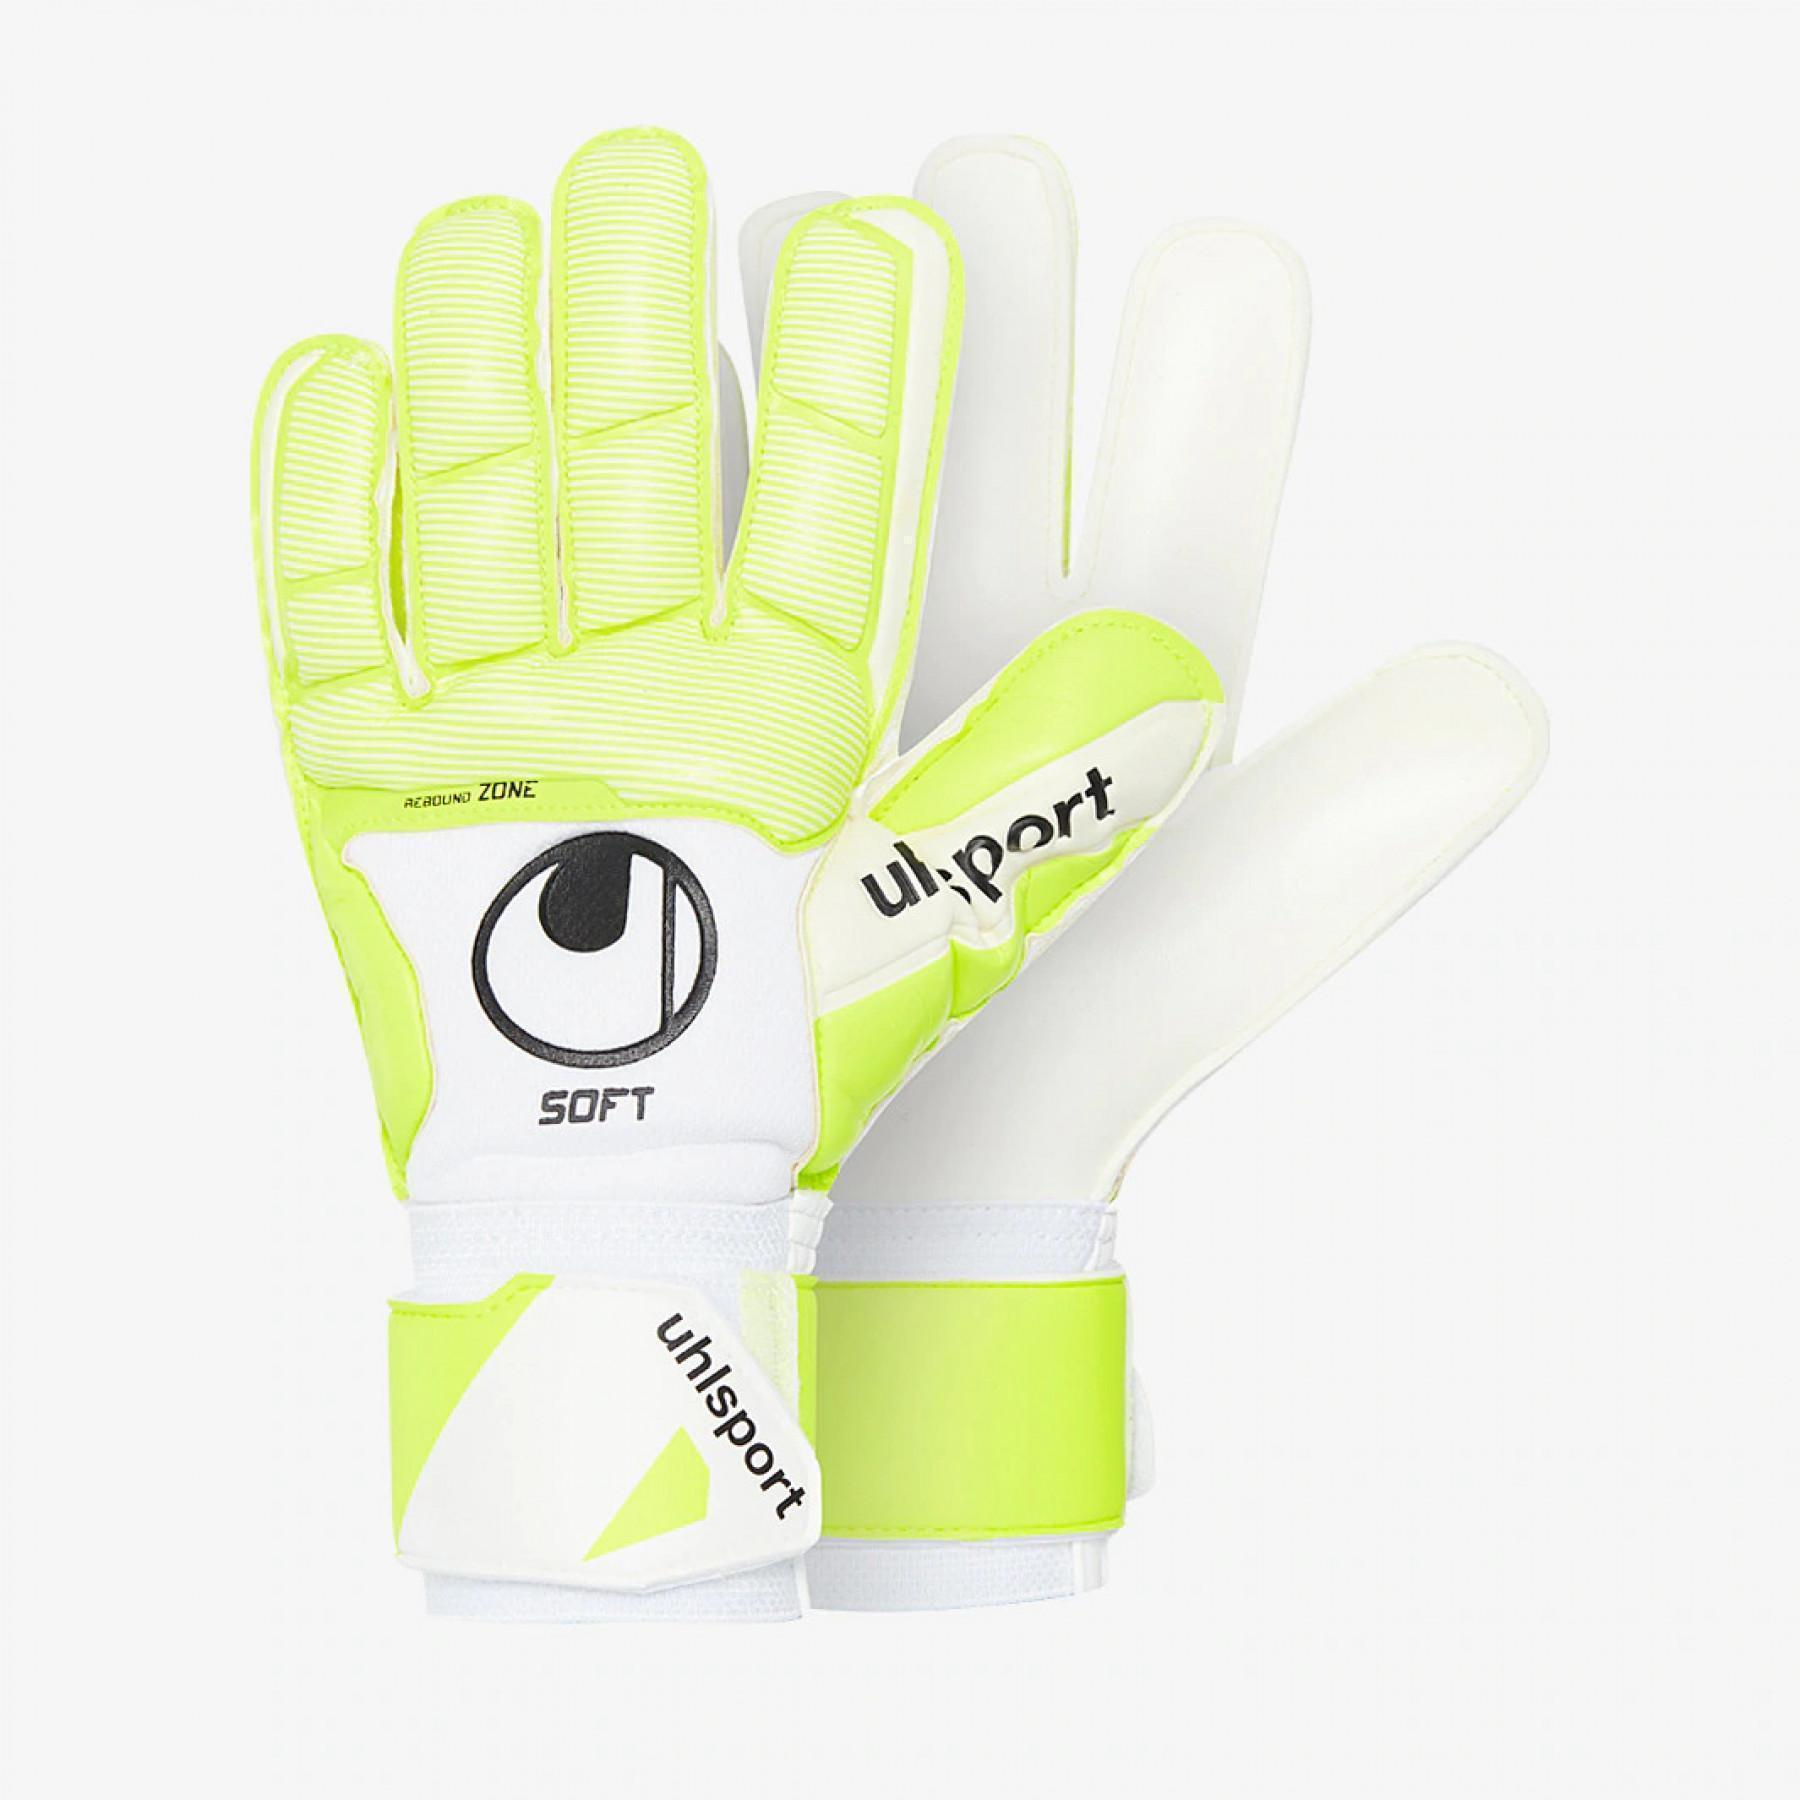 Uhlsport Pure Alliance Soft Pro Handschuhe